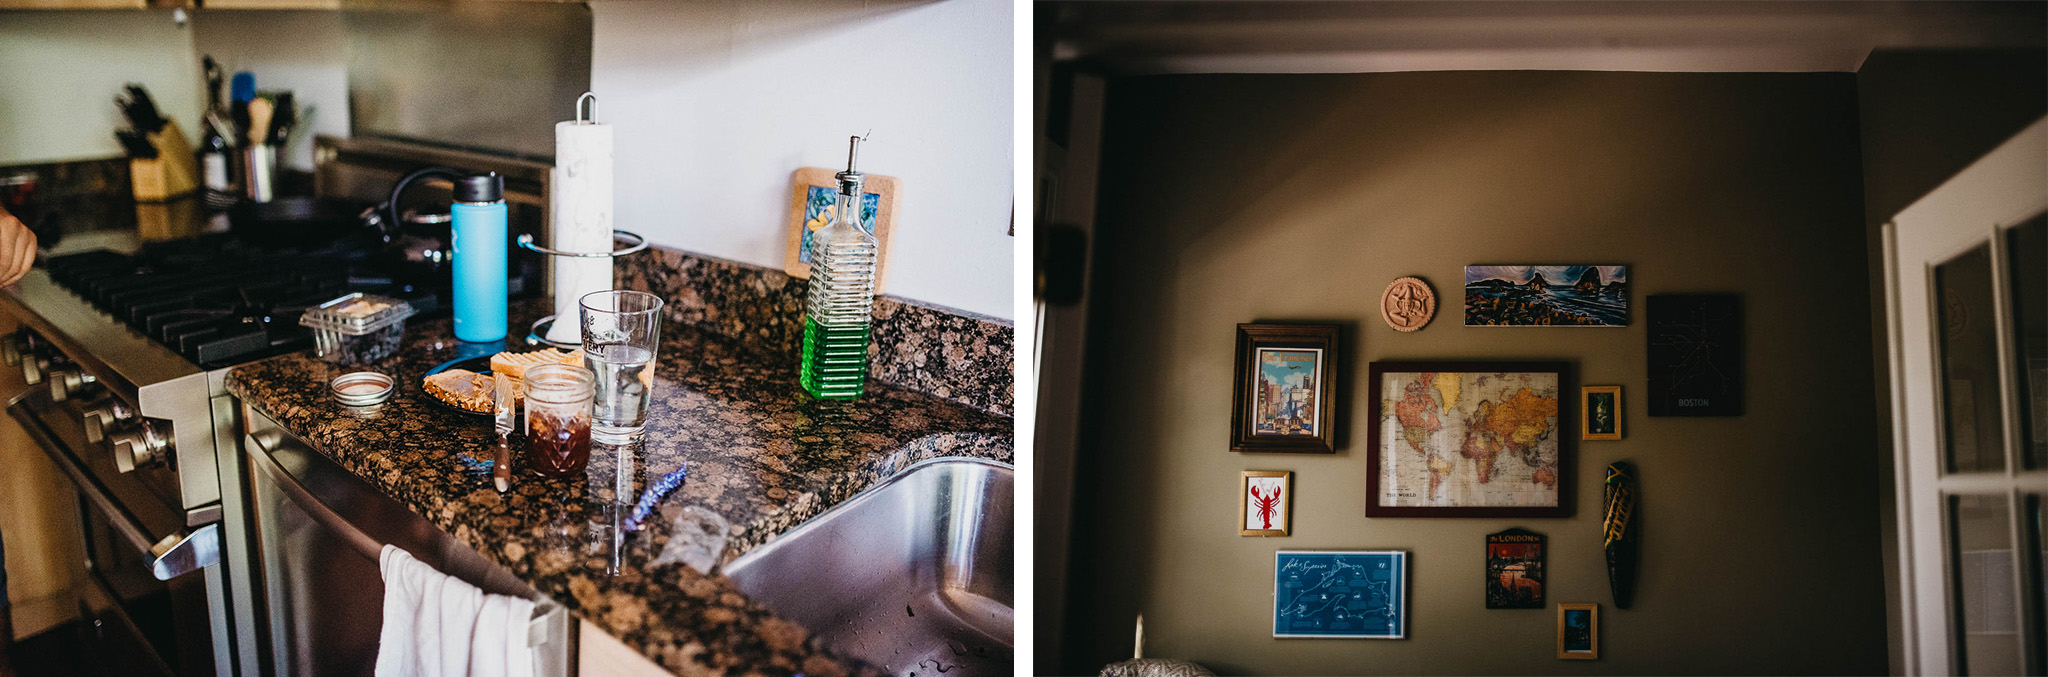 Decorations in engaged couples home